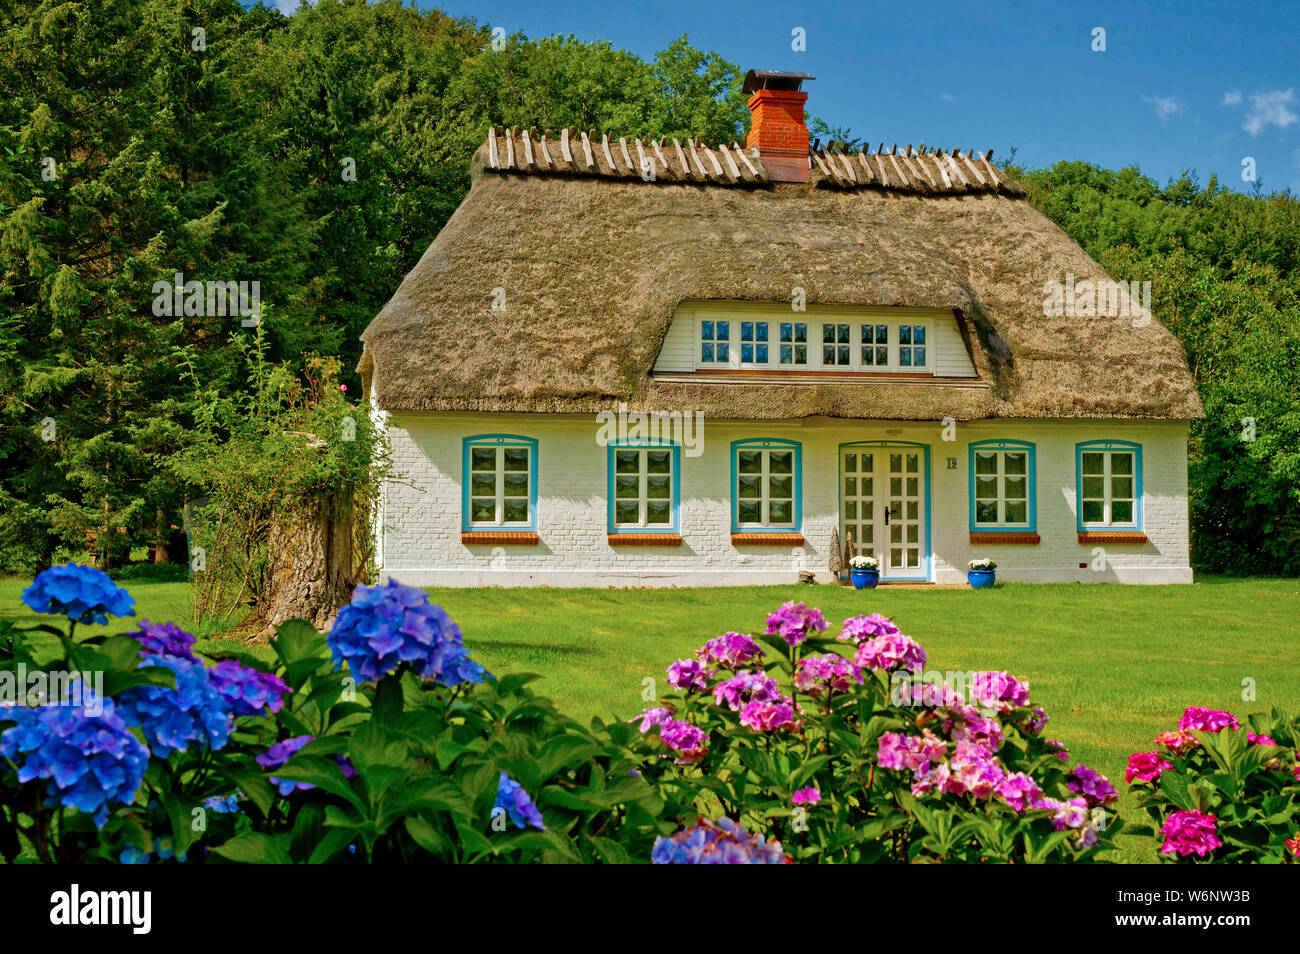 Traditional house with thatched roof and garden, Steinberghaff, Schleswig-Holstein, Germany Stock Photo